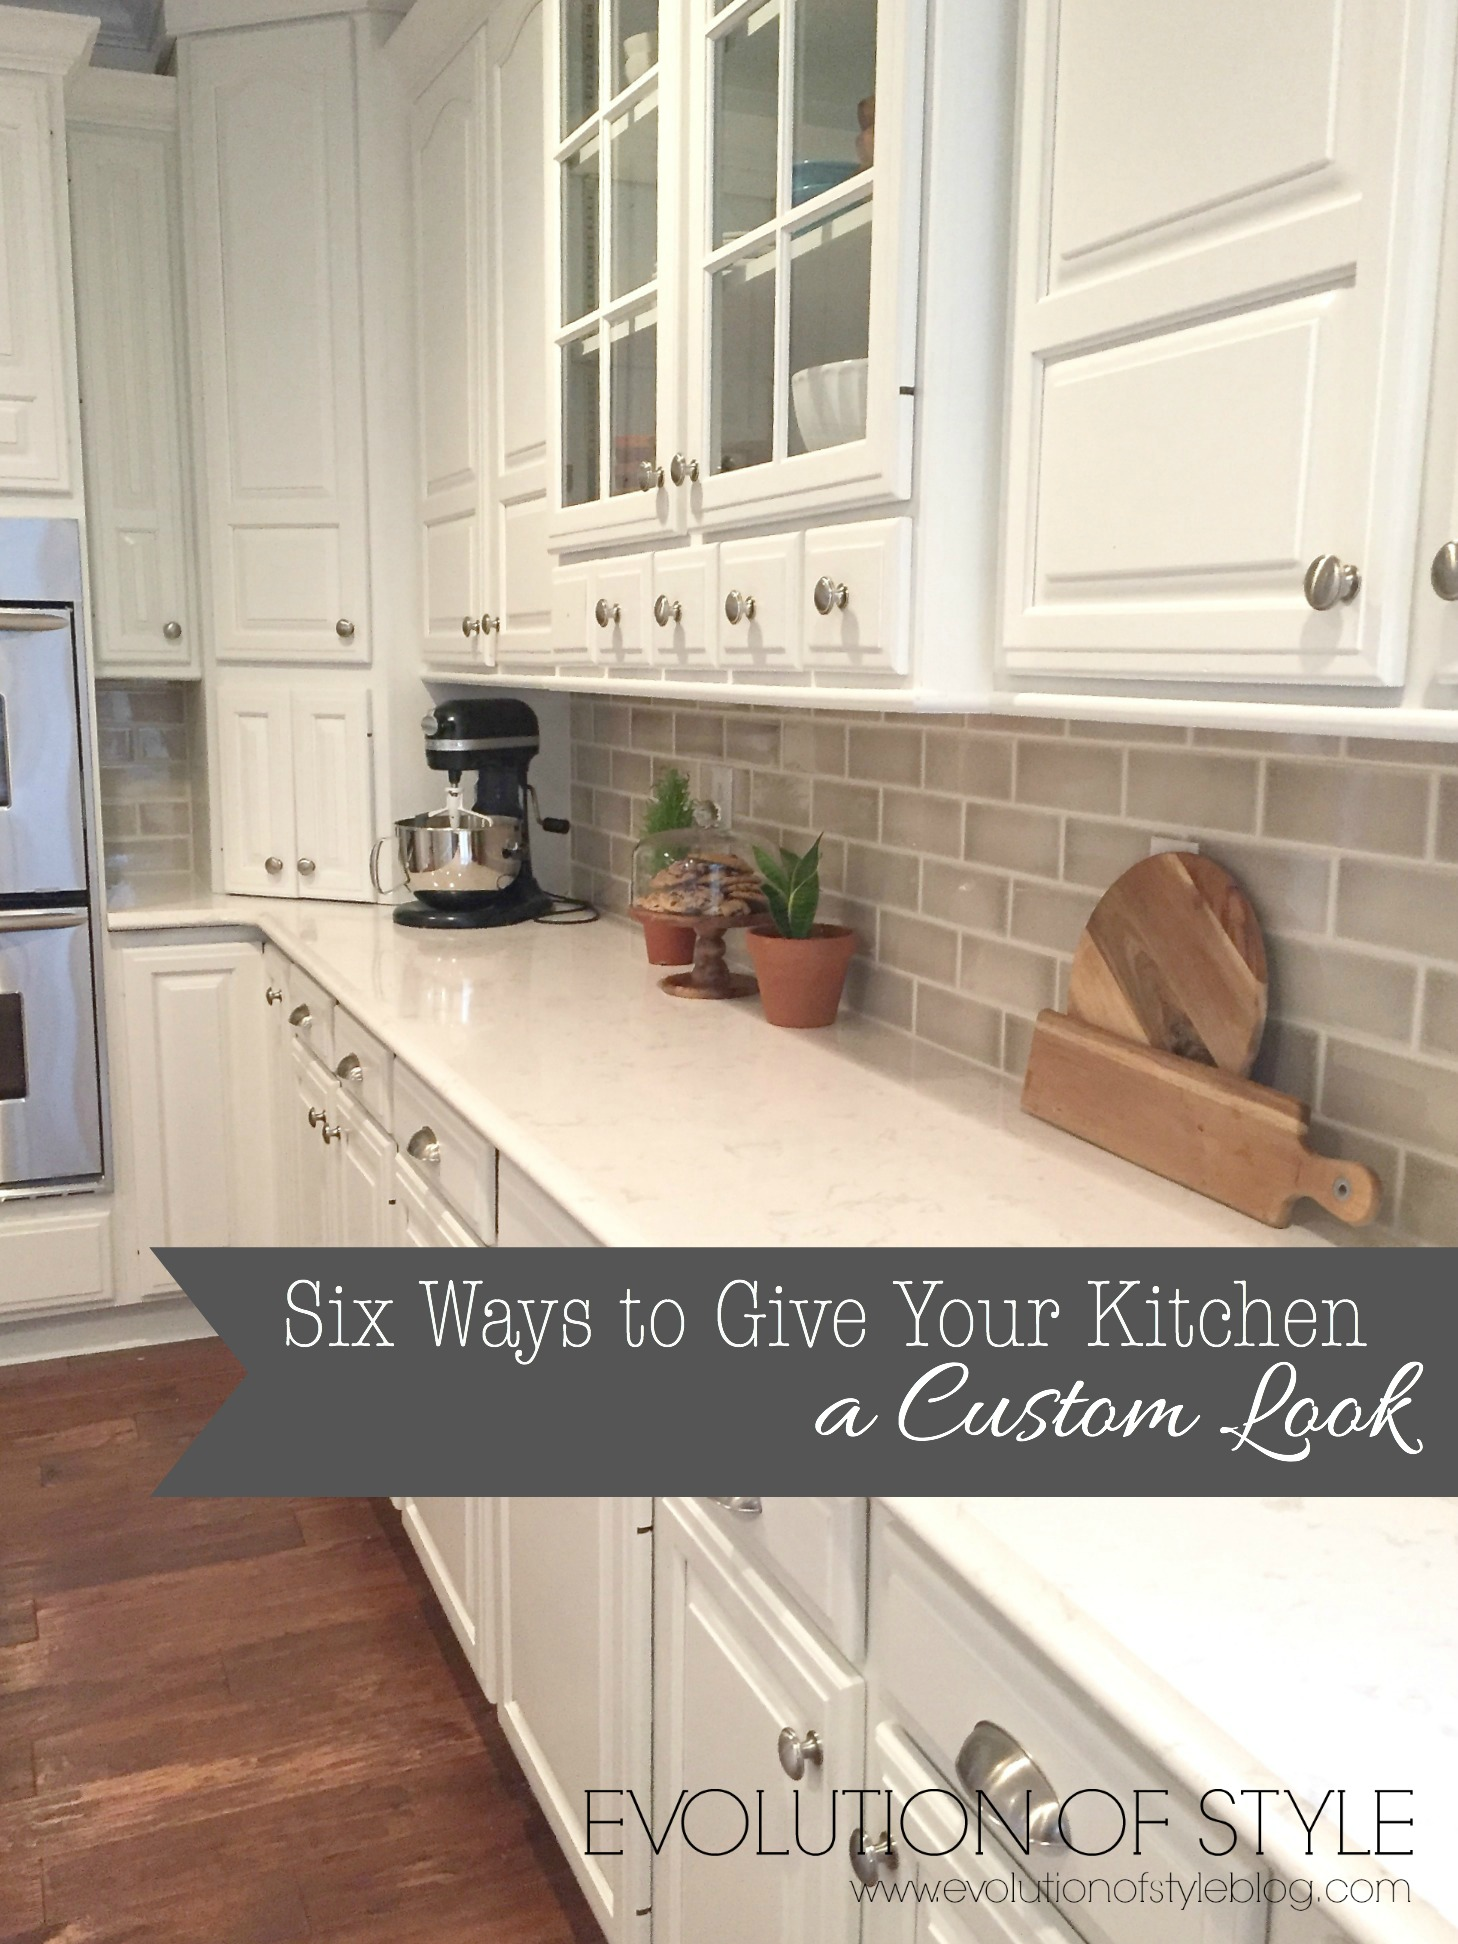 Six Ways to Give Your Kitchen a Custom Look - Evolution of Style